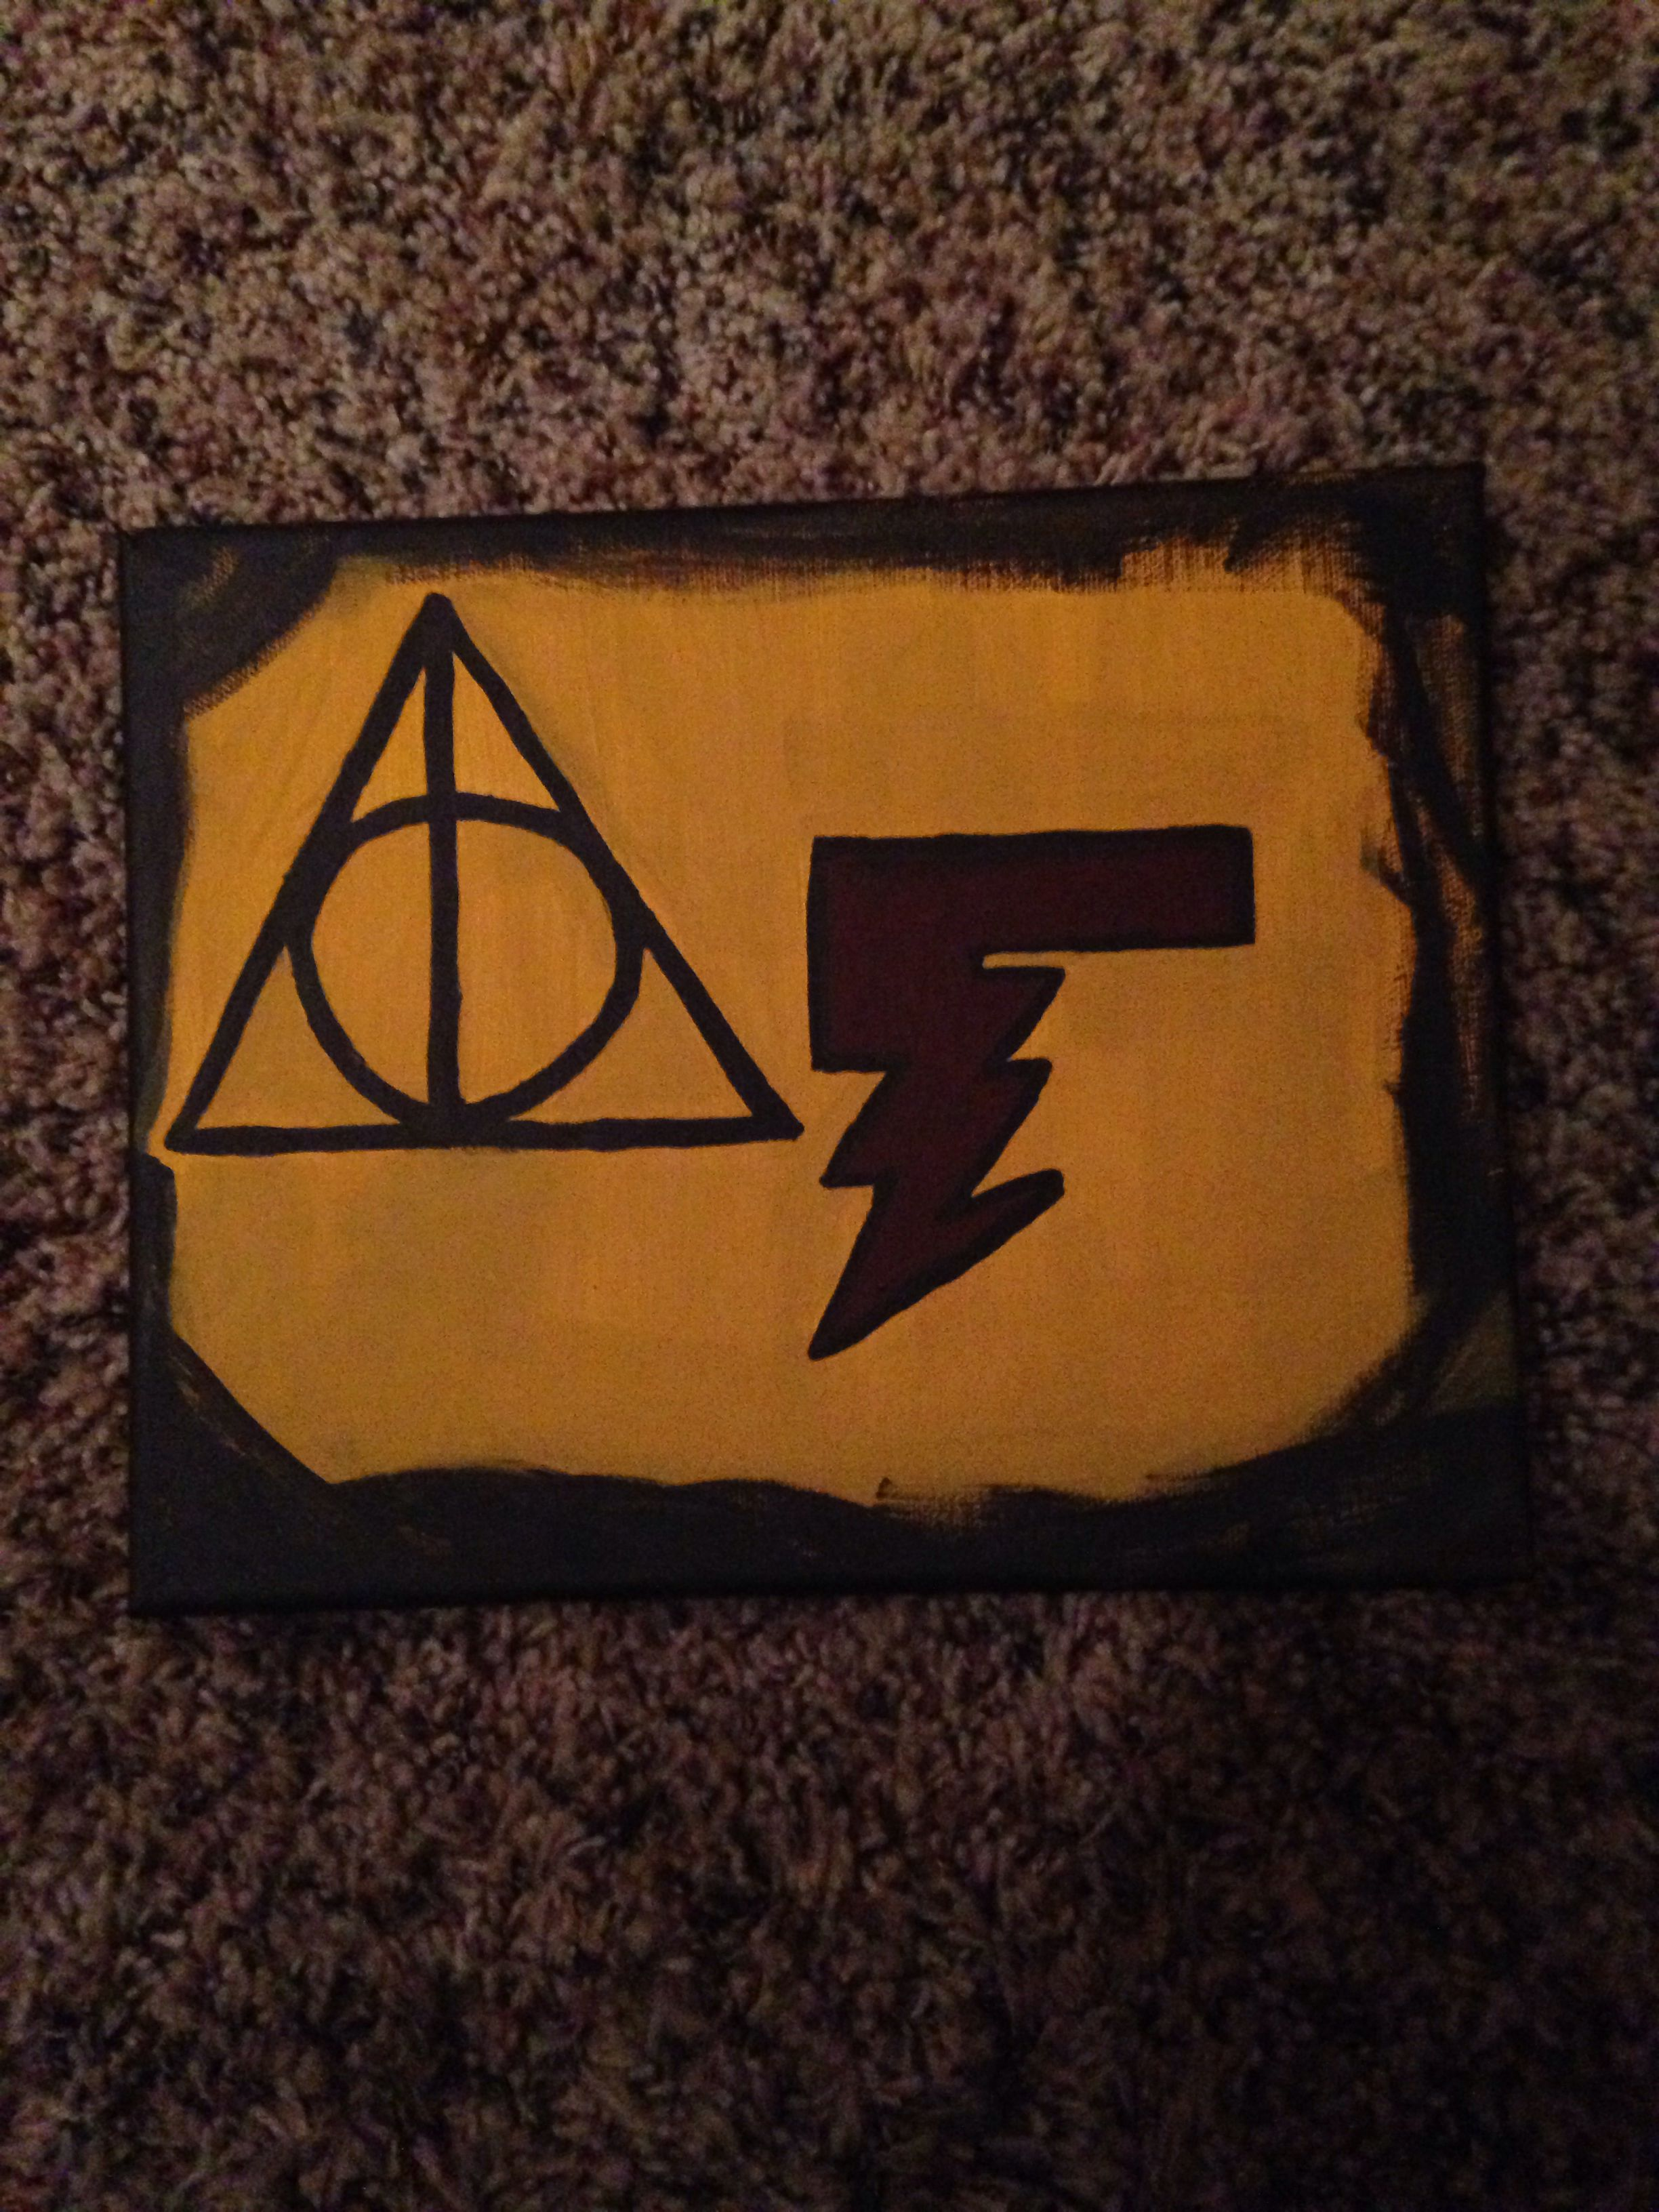 Delta gamma harry potter quite possibly two of my favorite delta gamma harry potter quite possibly two of my favorite things buycottarizona Gallery